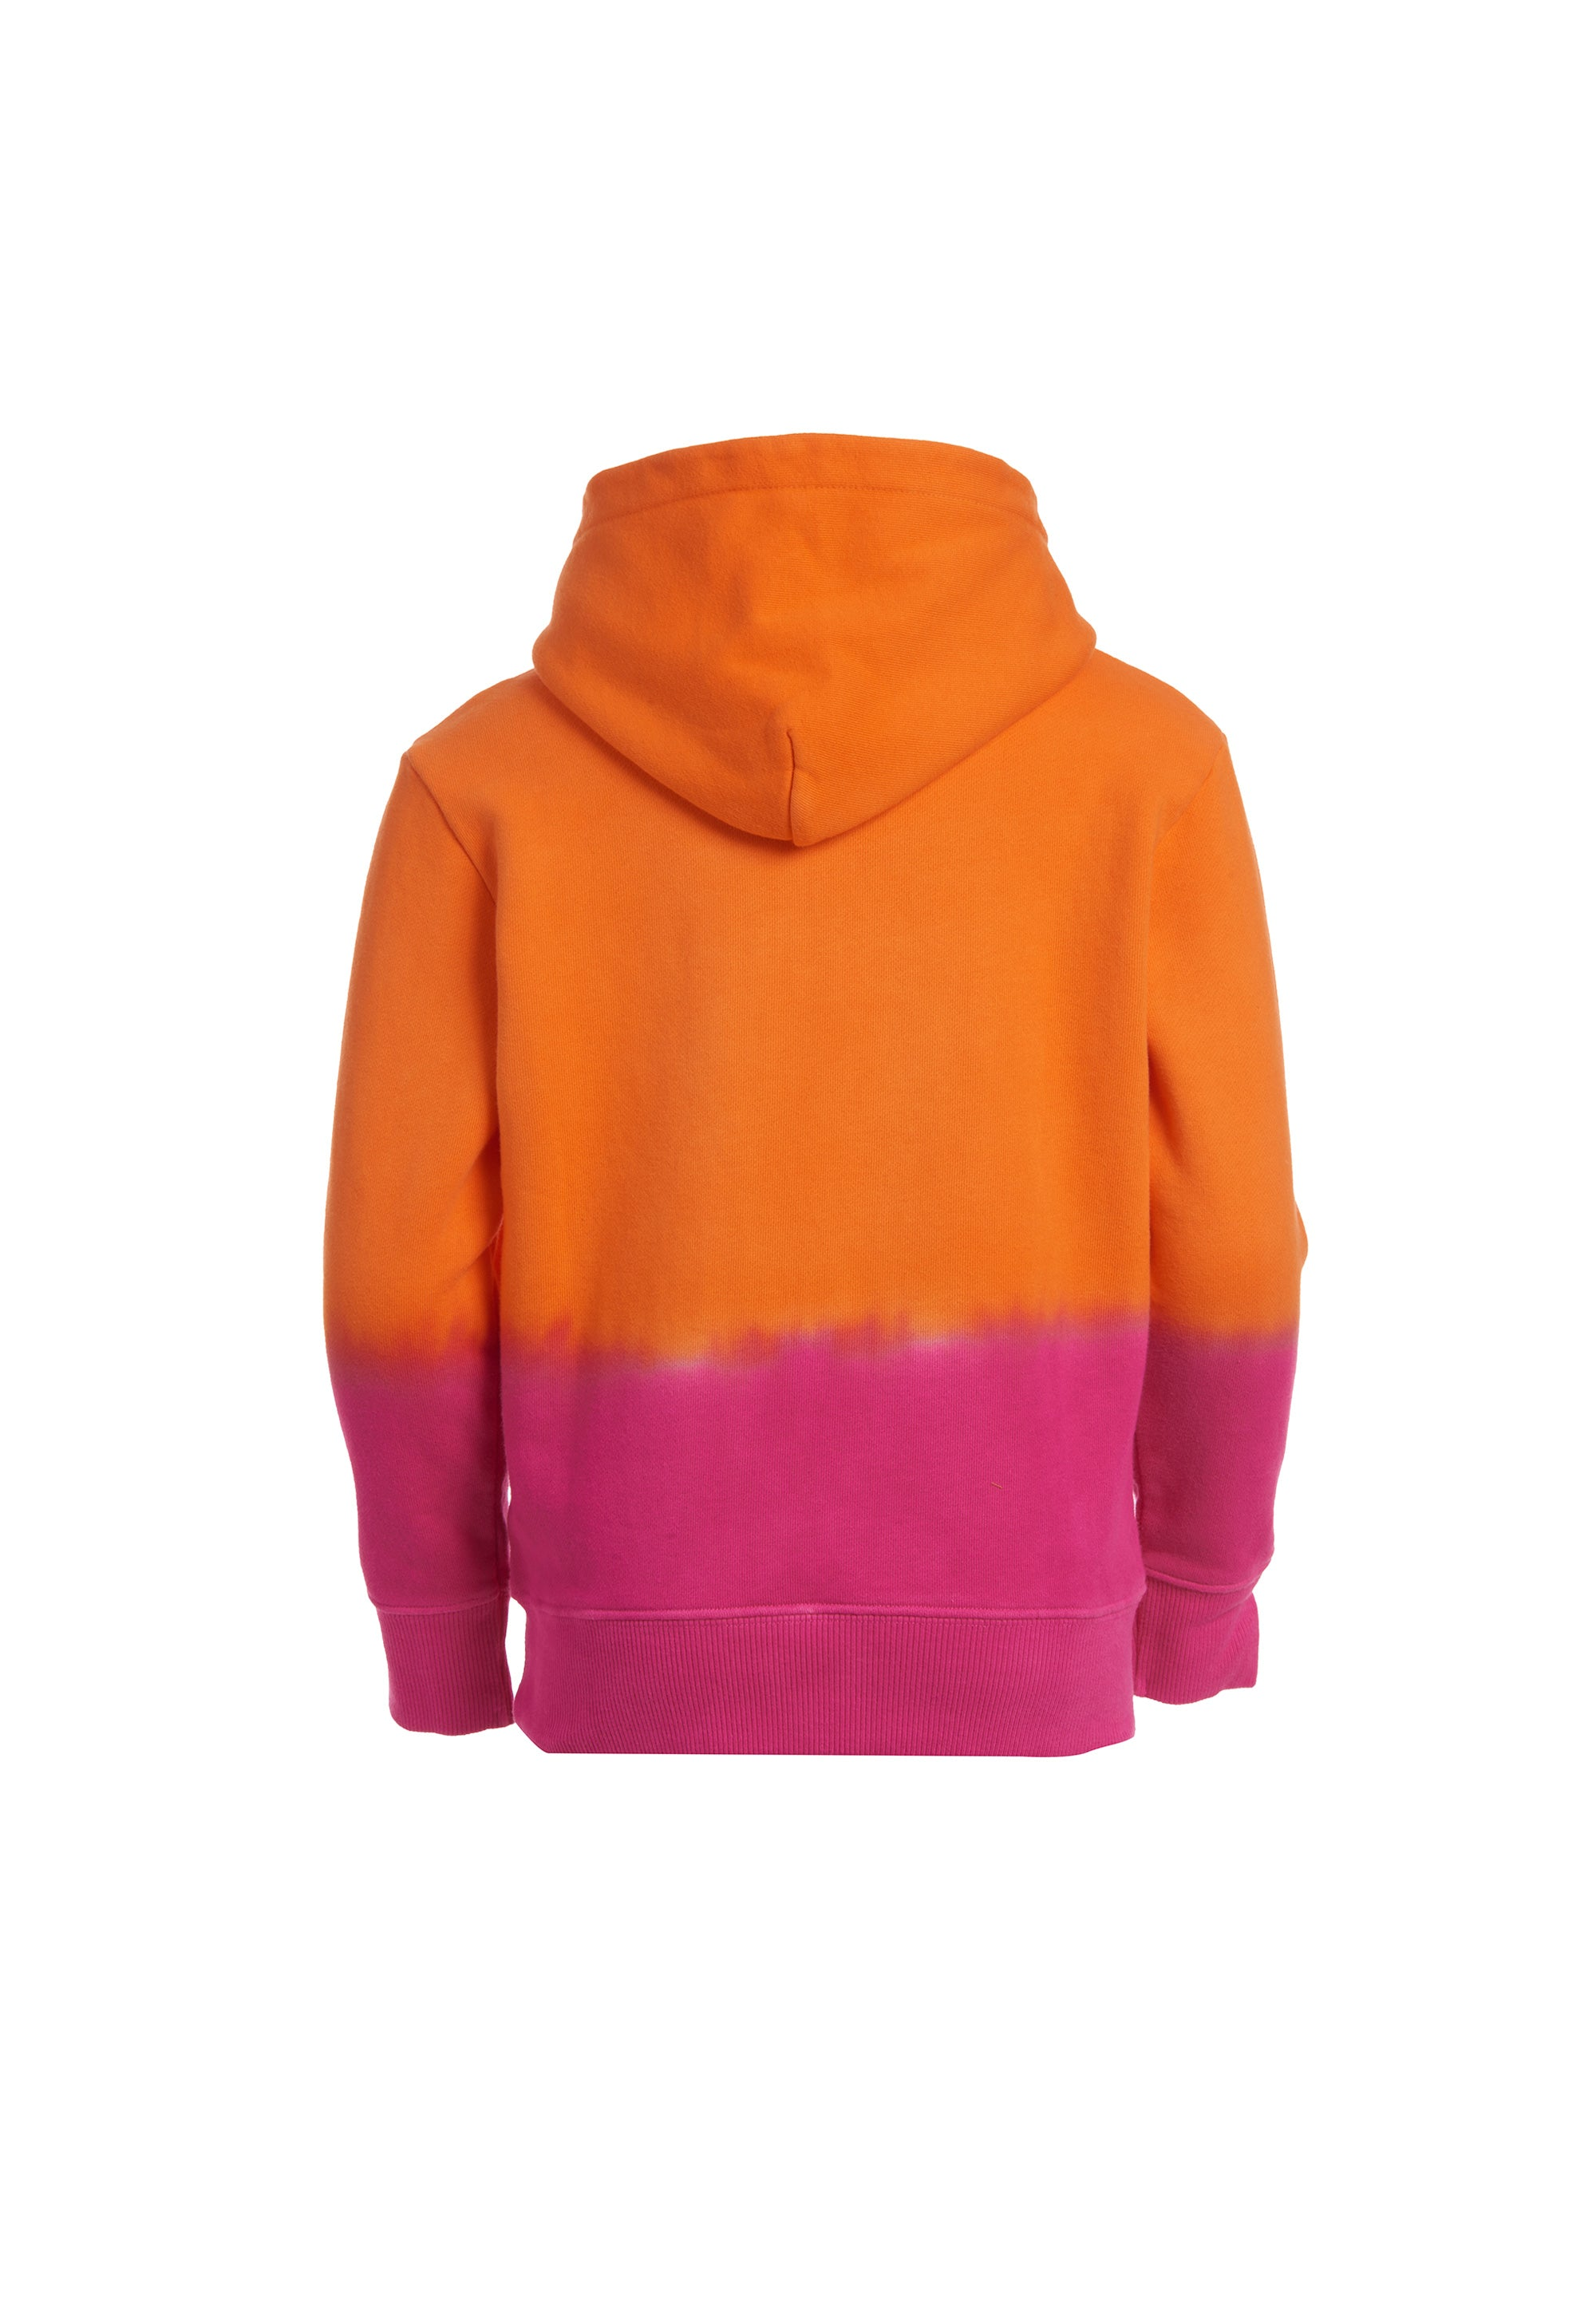 kiddos good vibrations hoodie